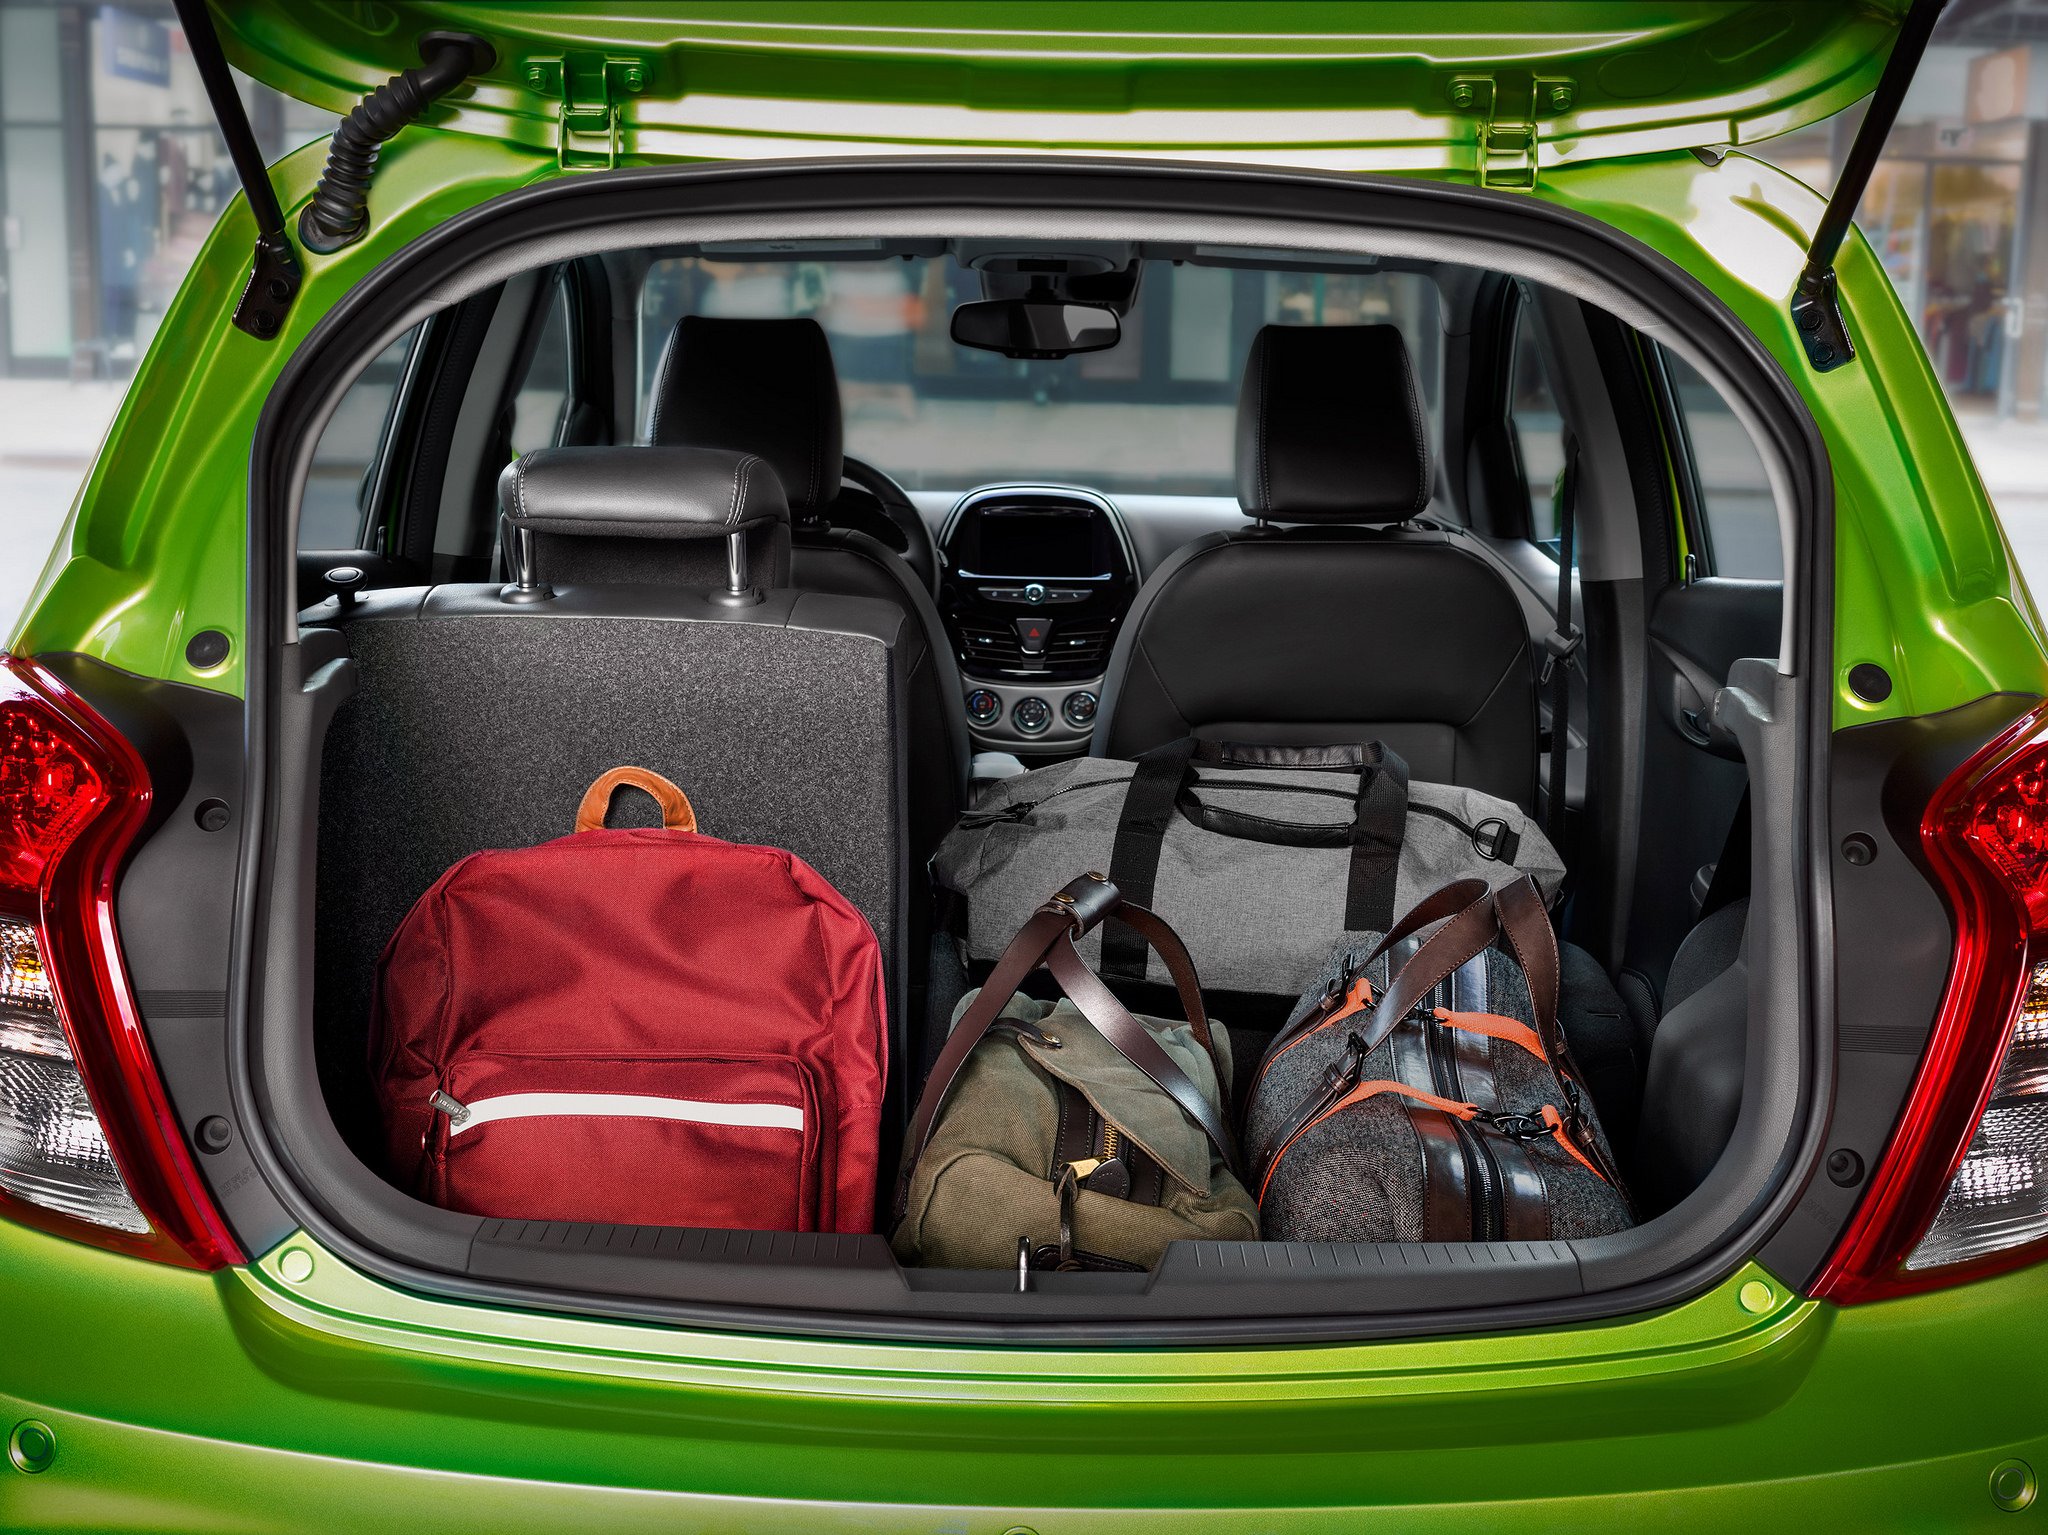 Chevy Spark Is Among the Best back to school cars